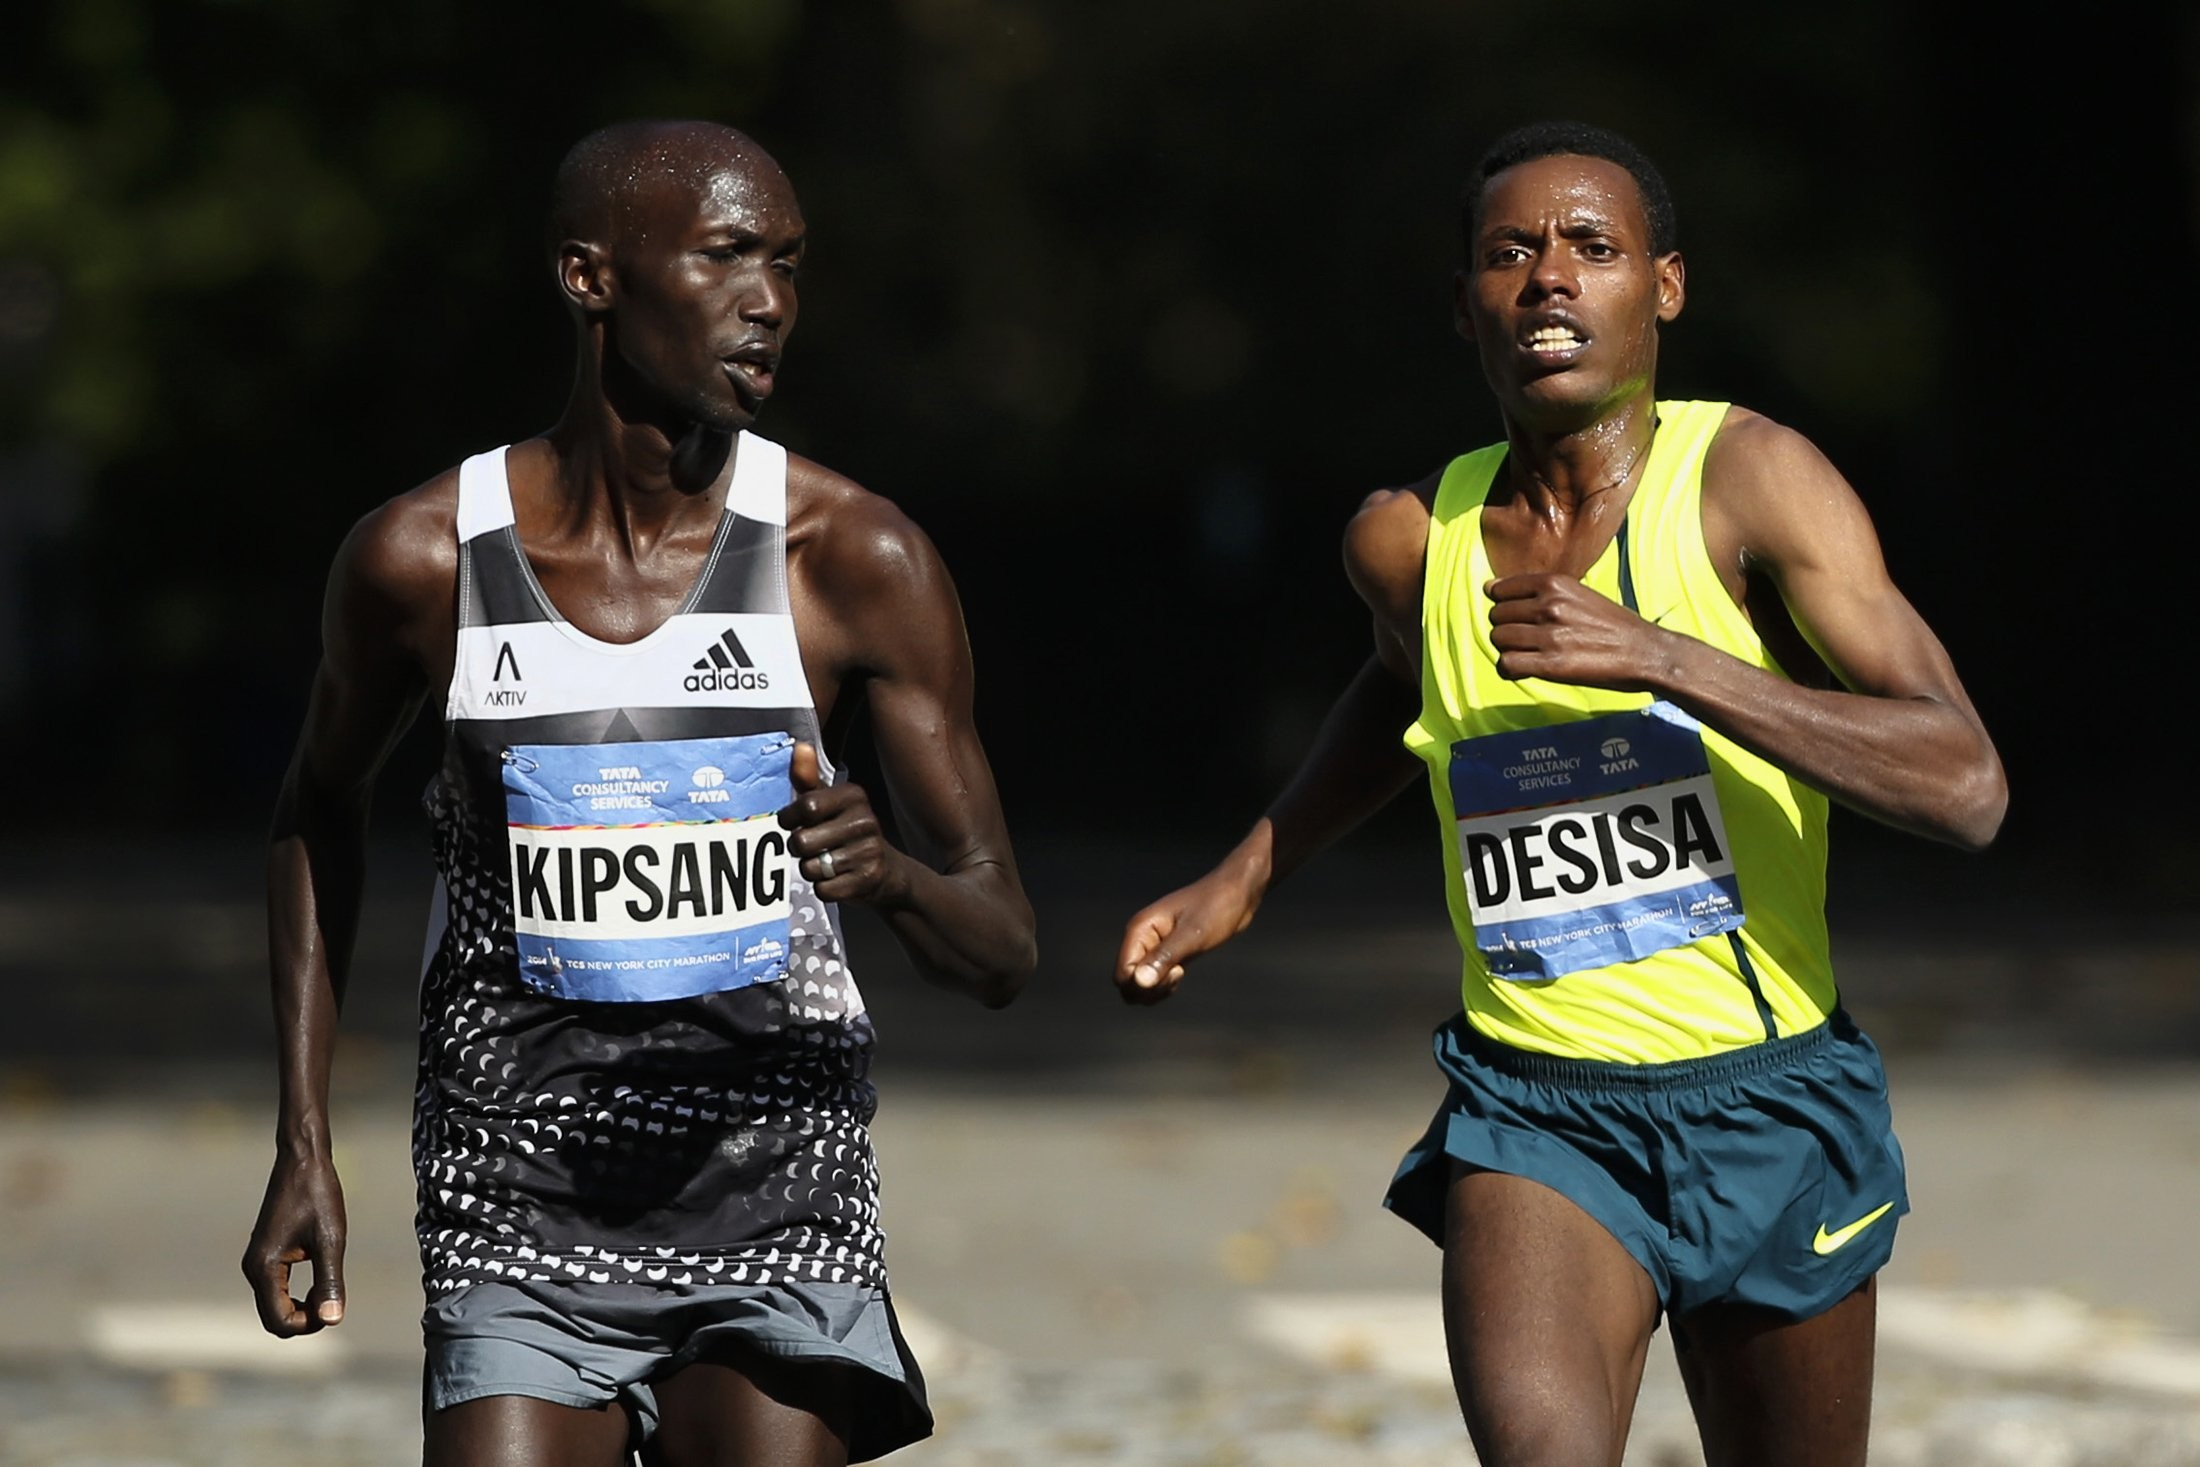 Wilson Kipsang speaks up why many Kenyan Runners are moving to other countries